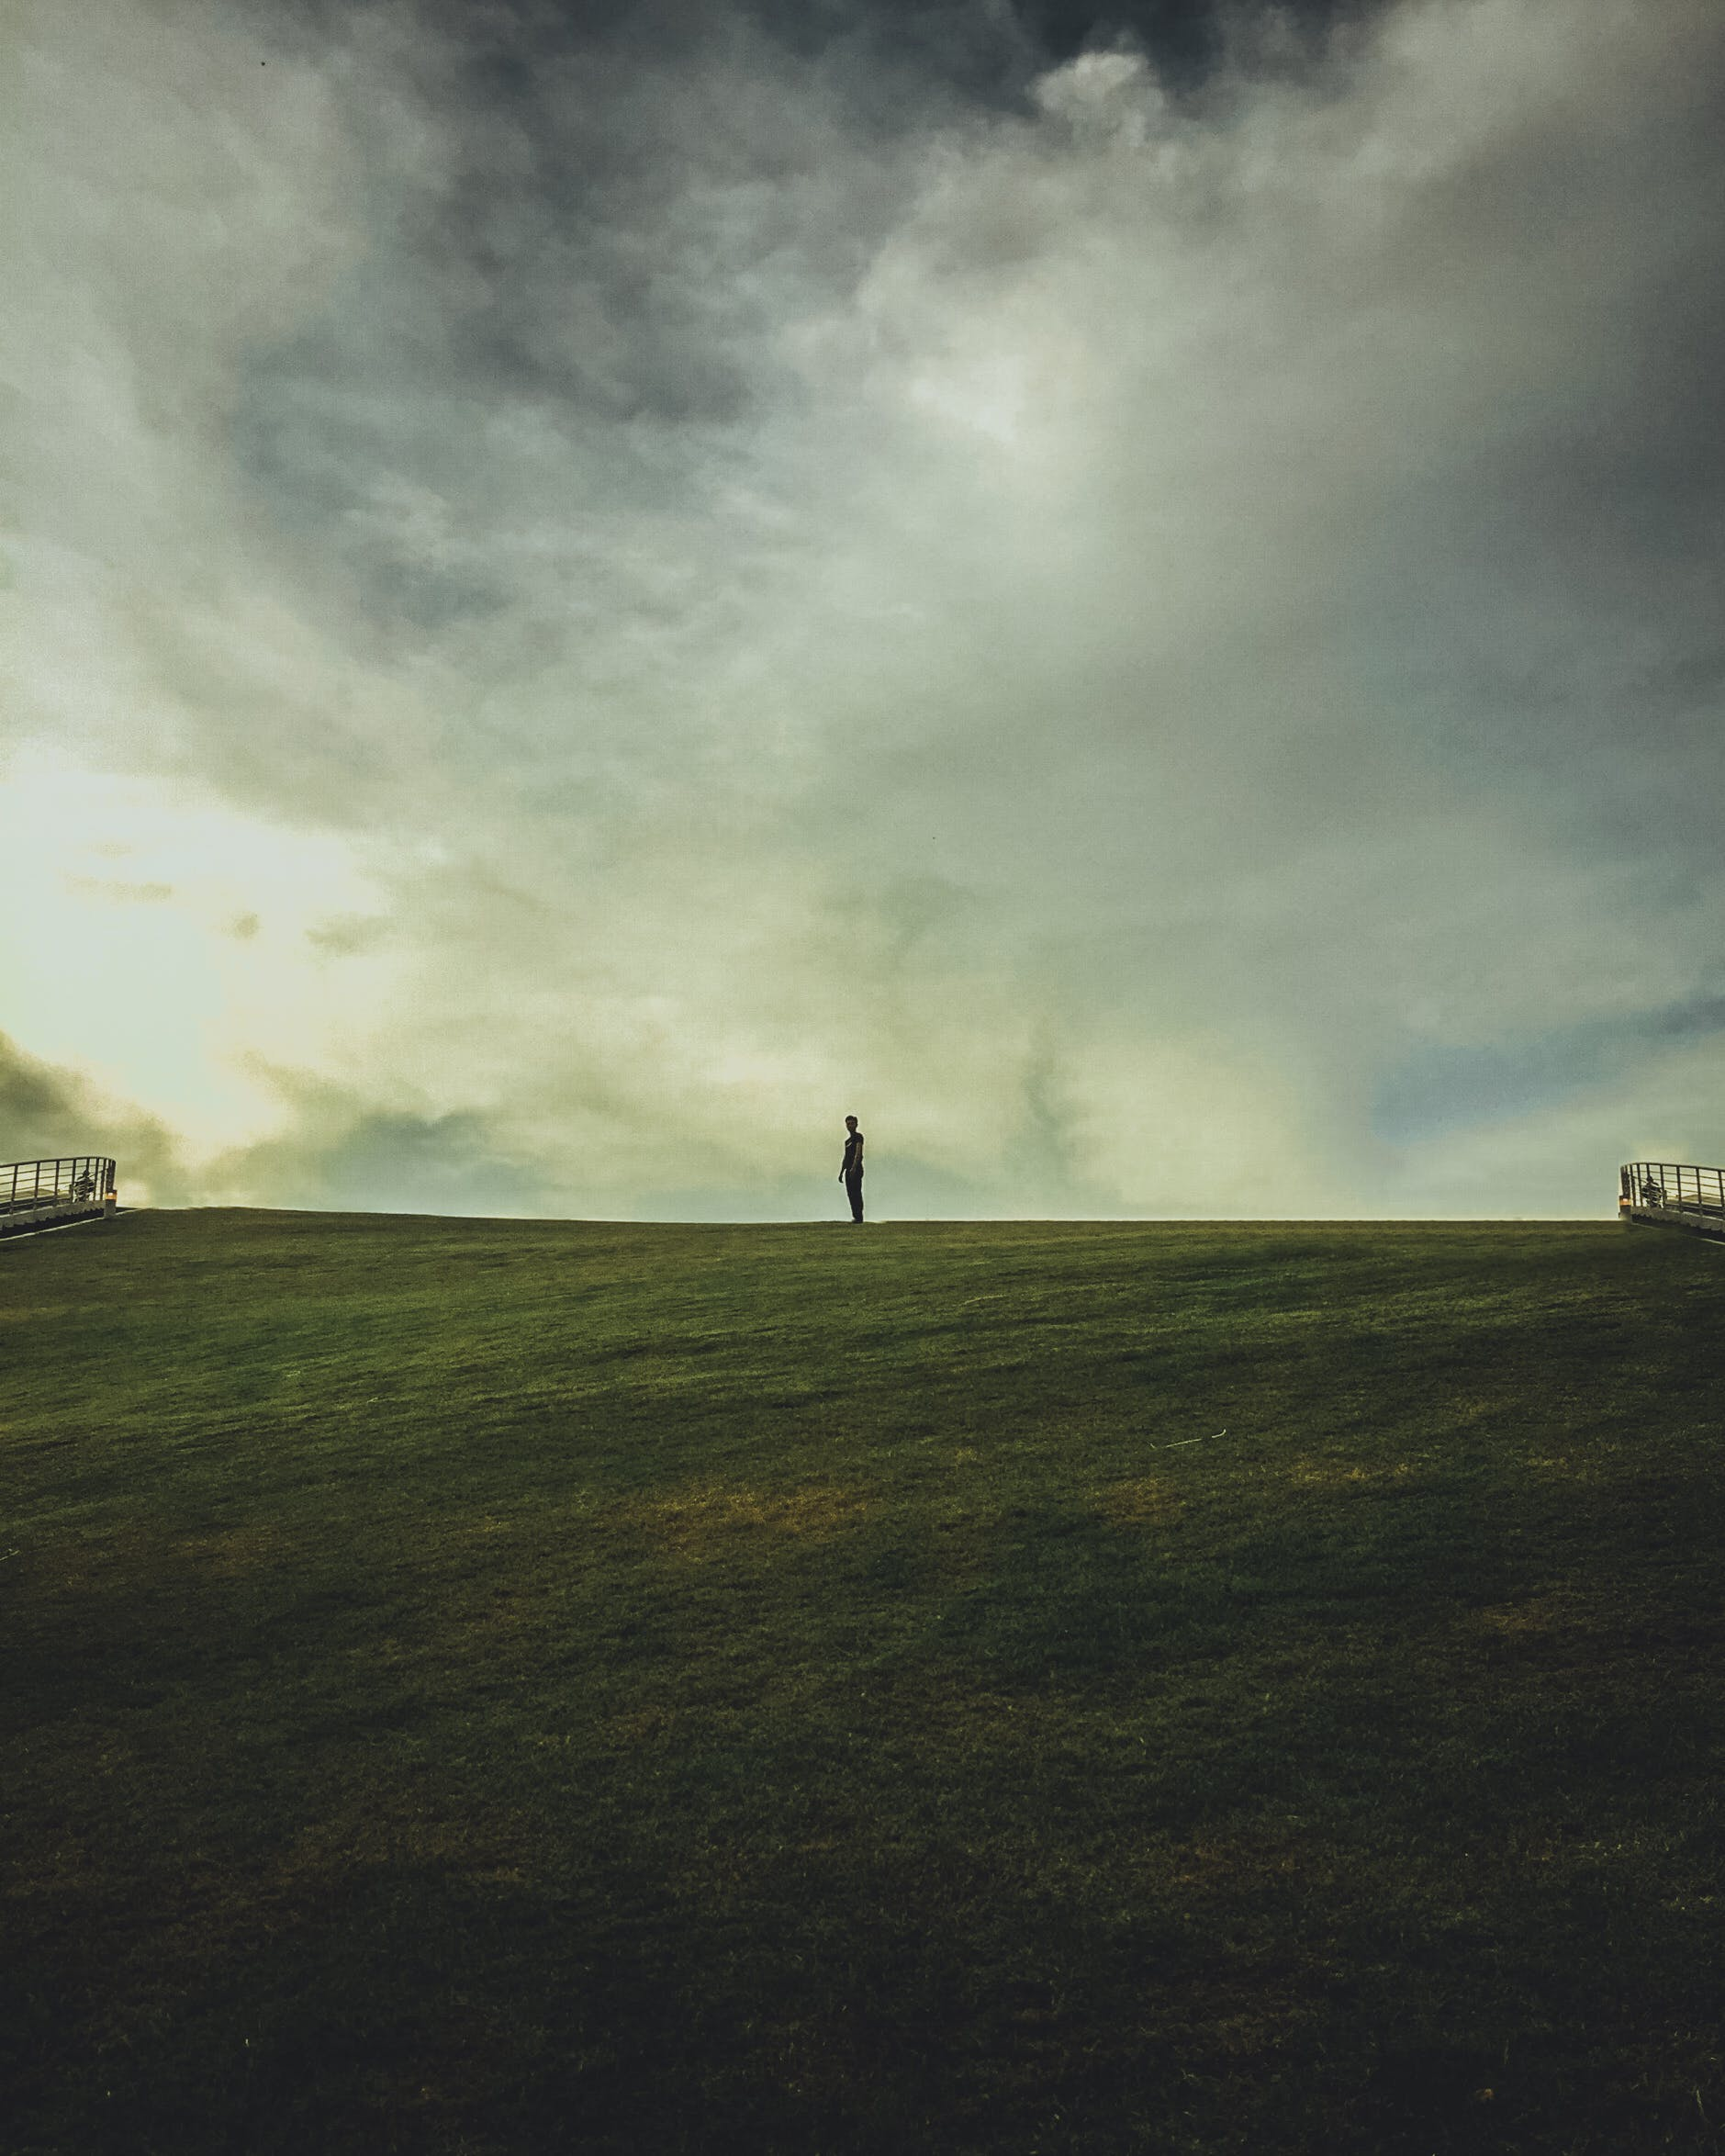 Person on Green Grass Field